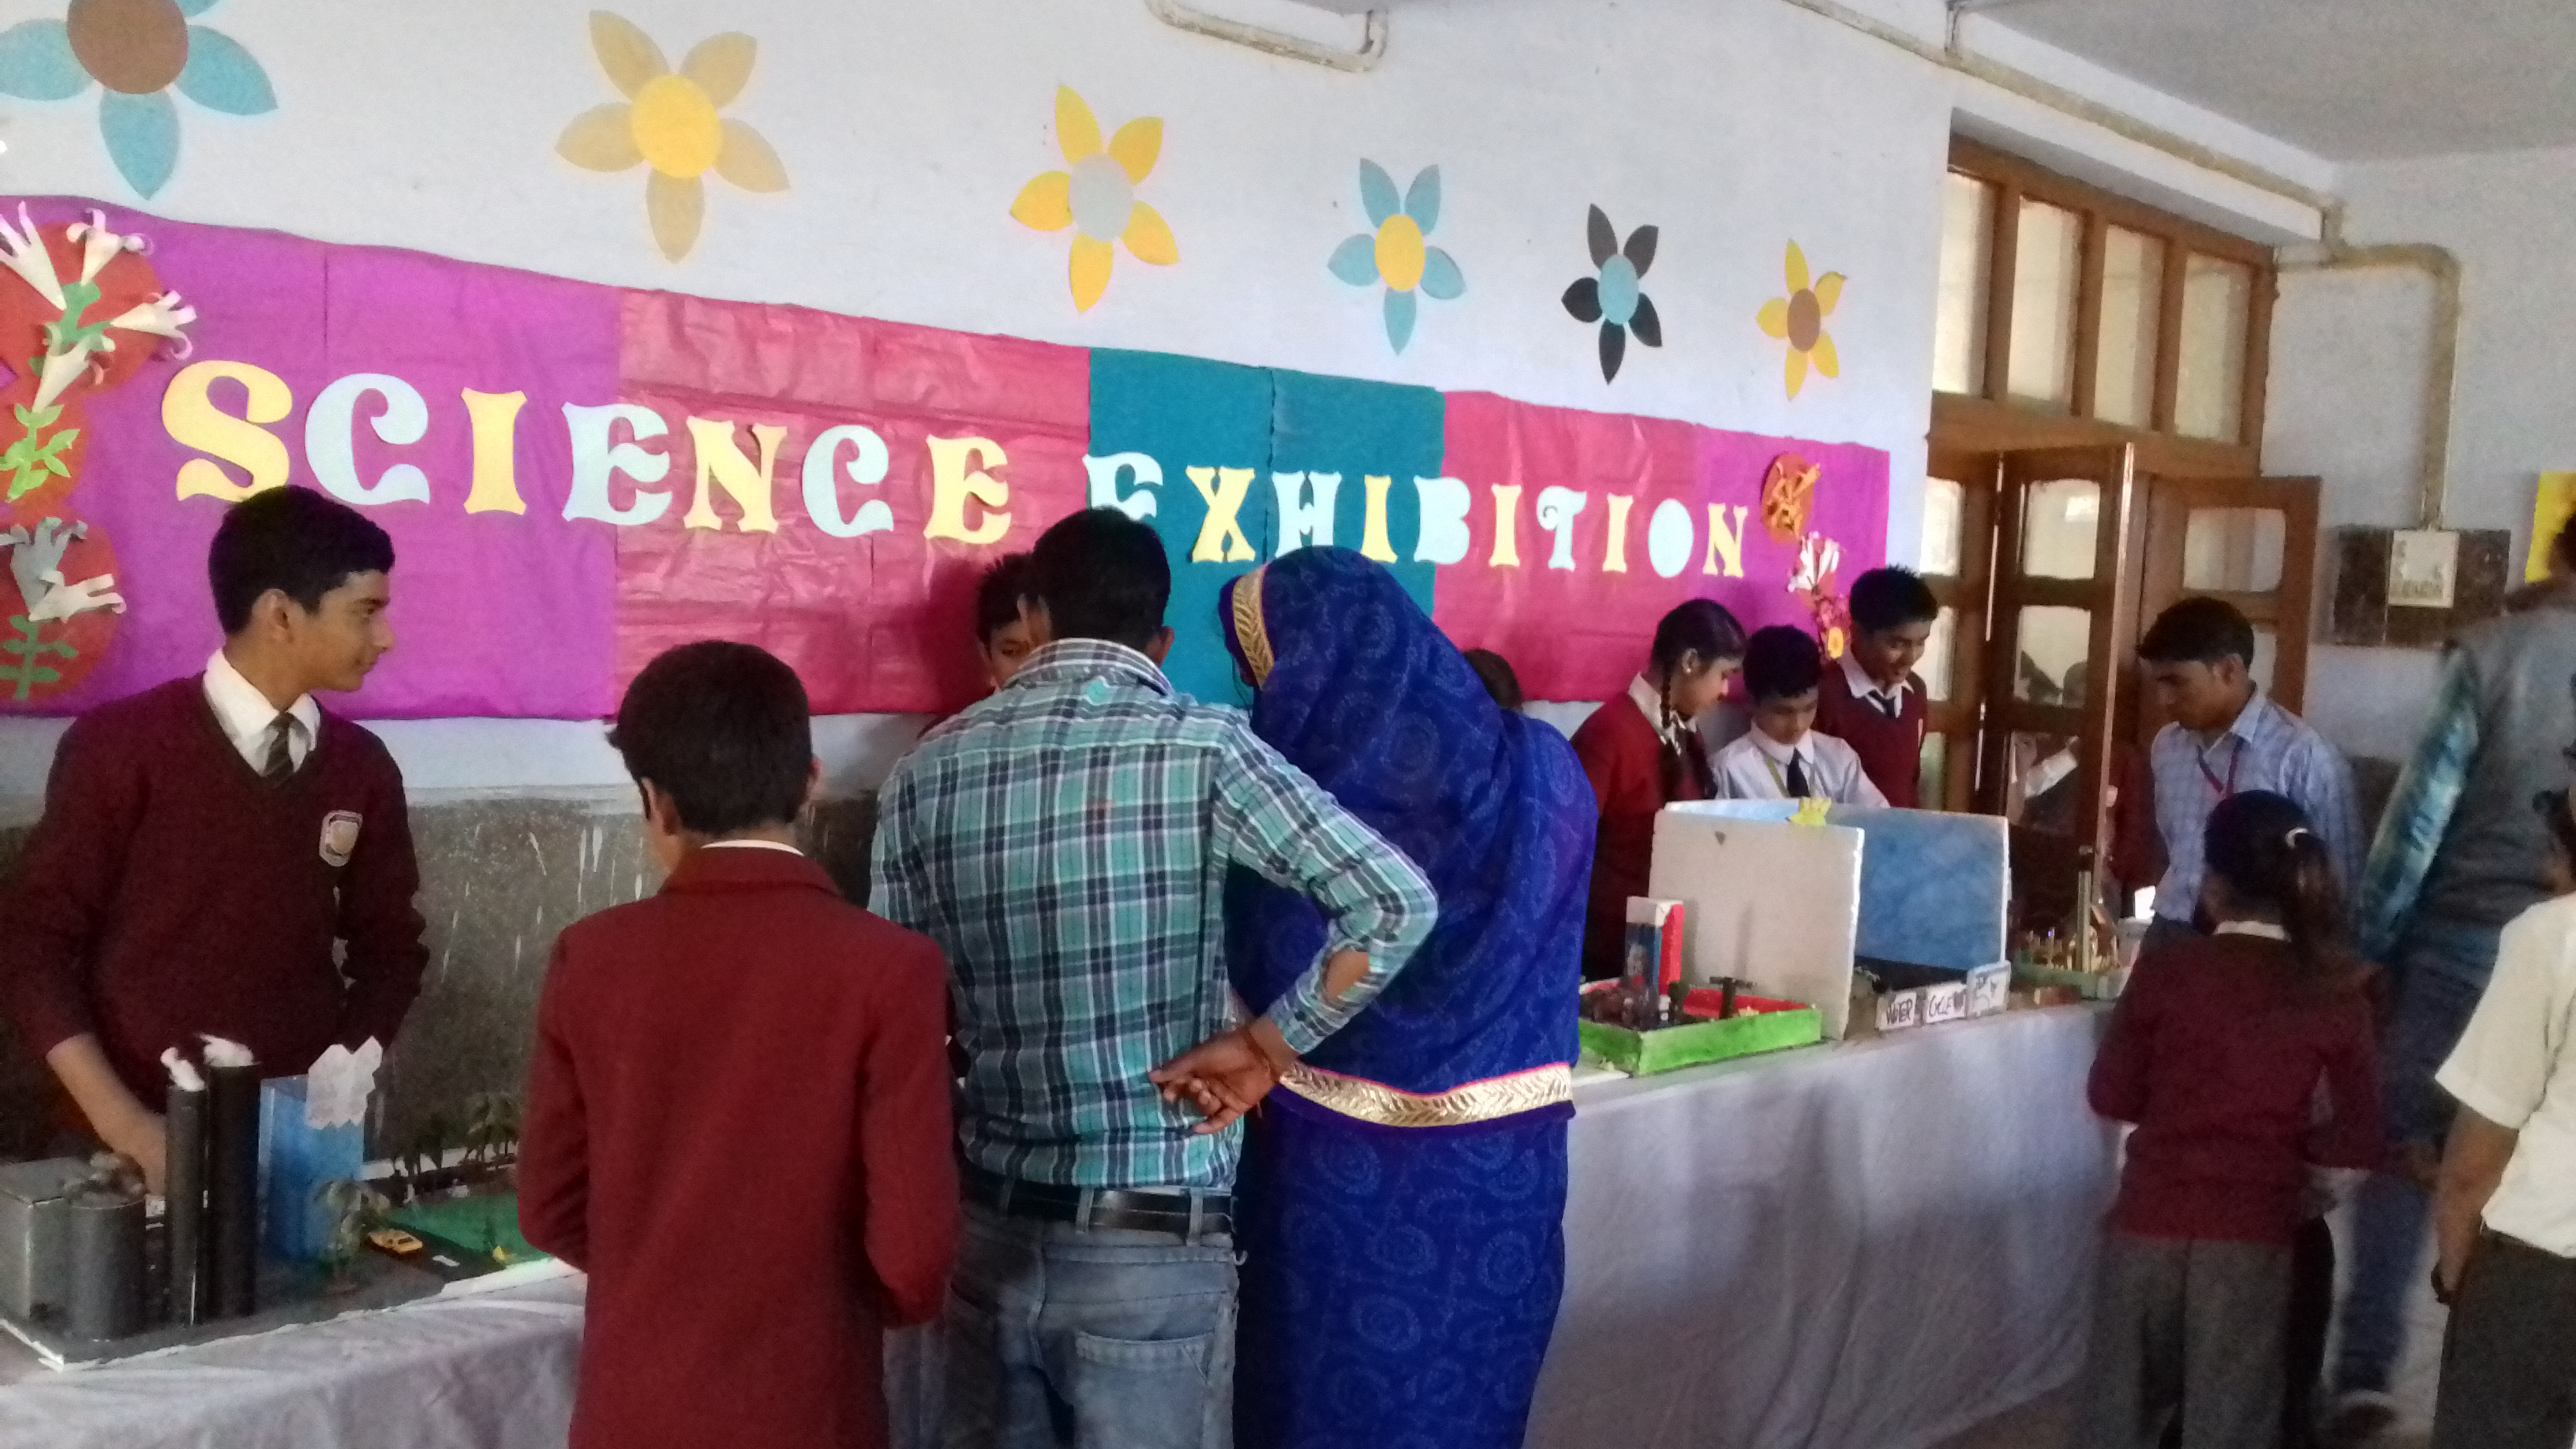 science exibition.jpg